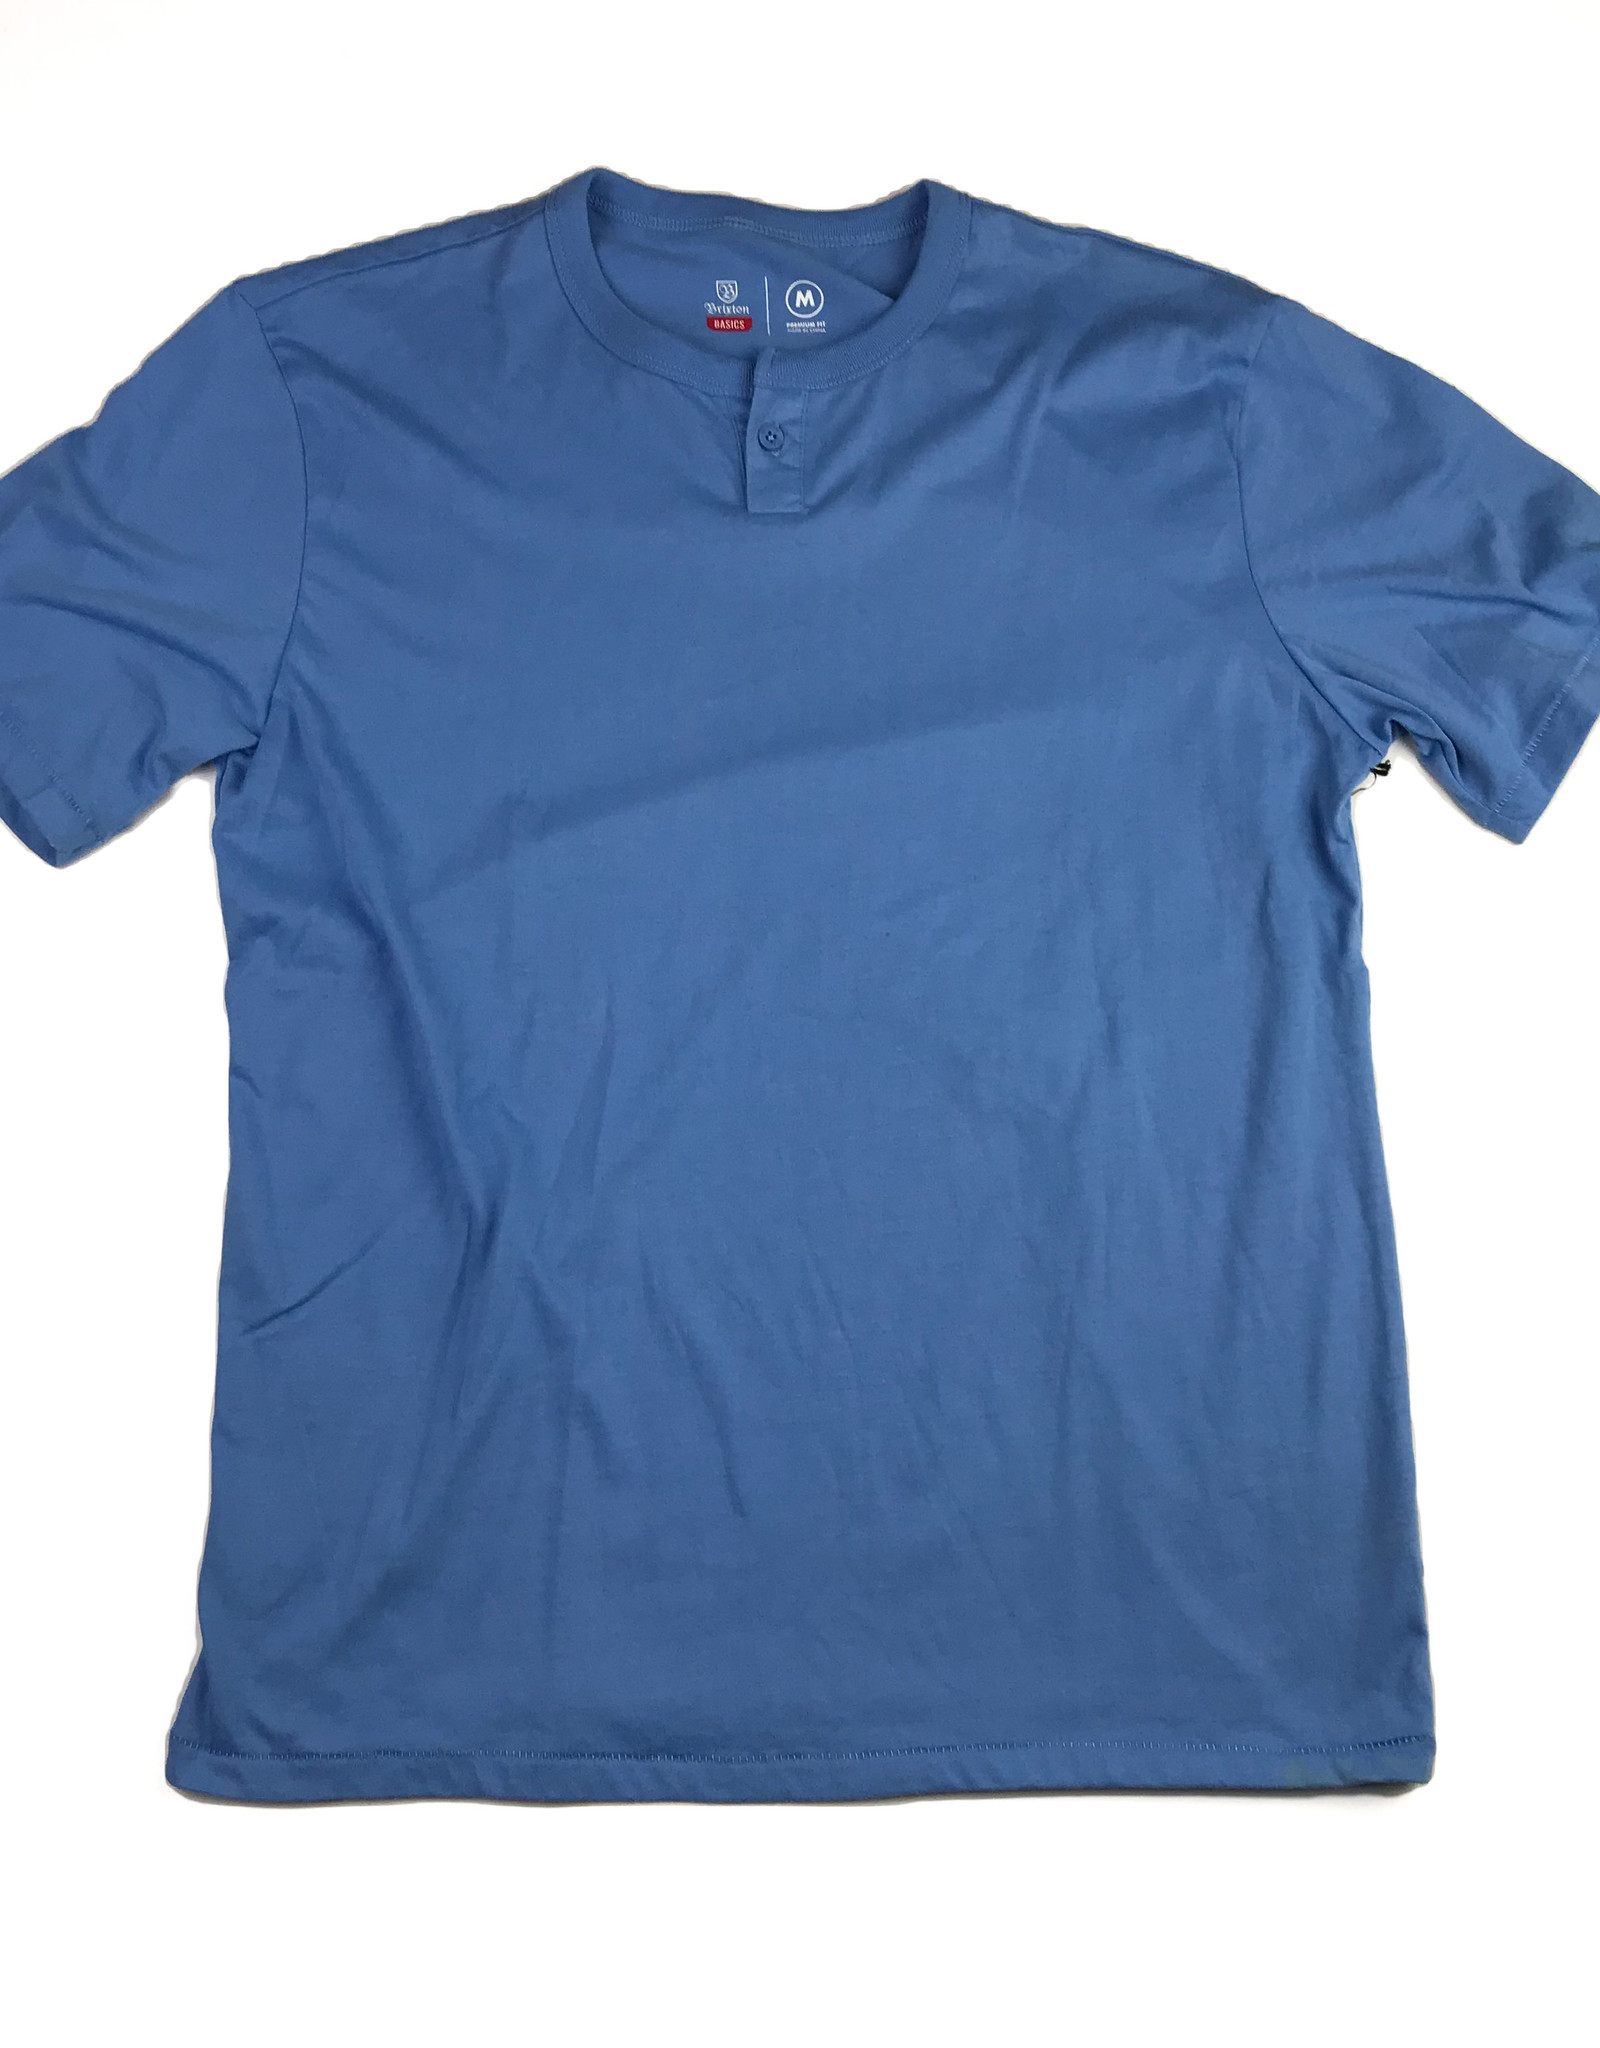 BRIXTON BRIXTON BASIC S/S HENLEY TEE -WASHED ROYAL